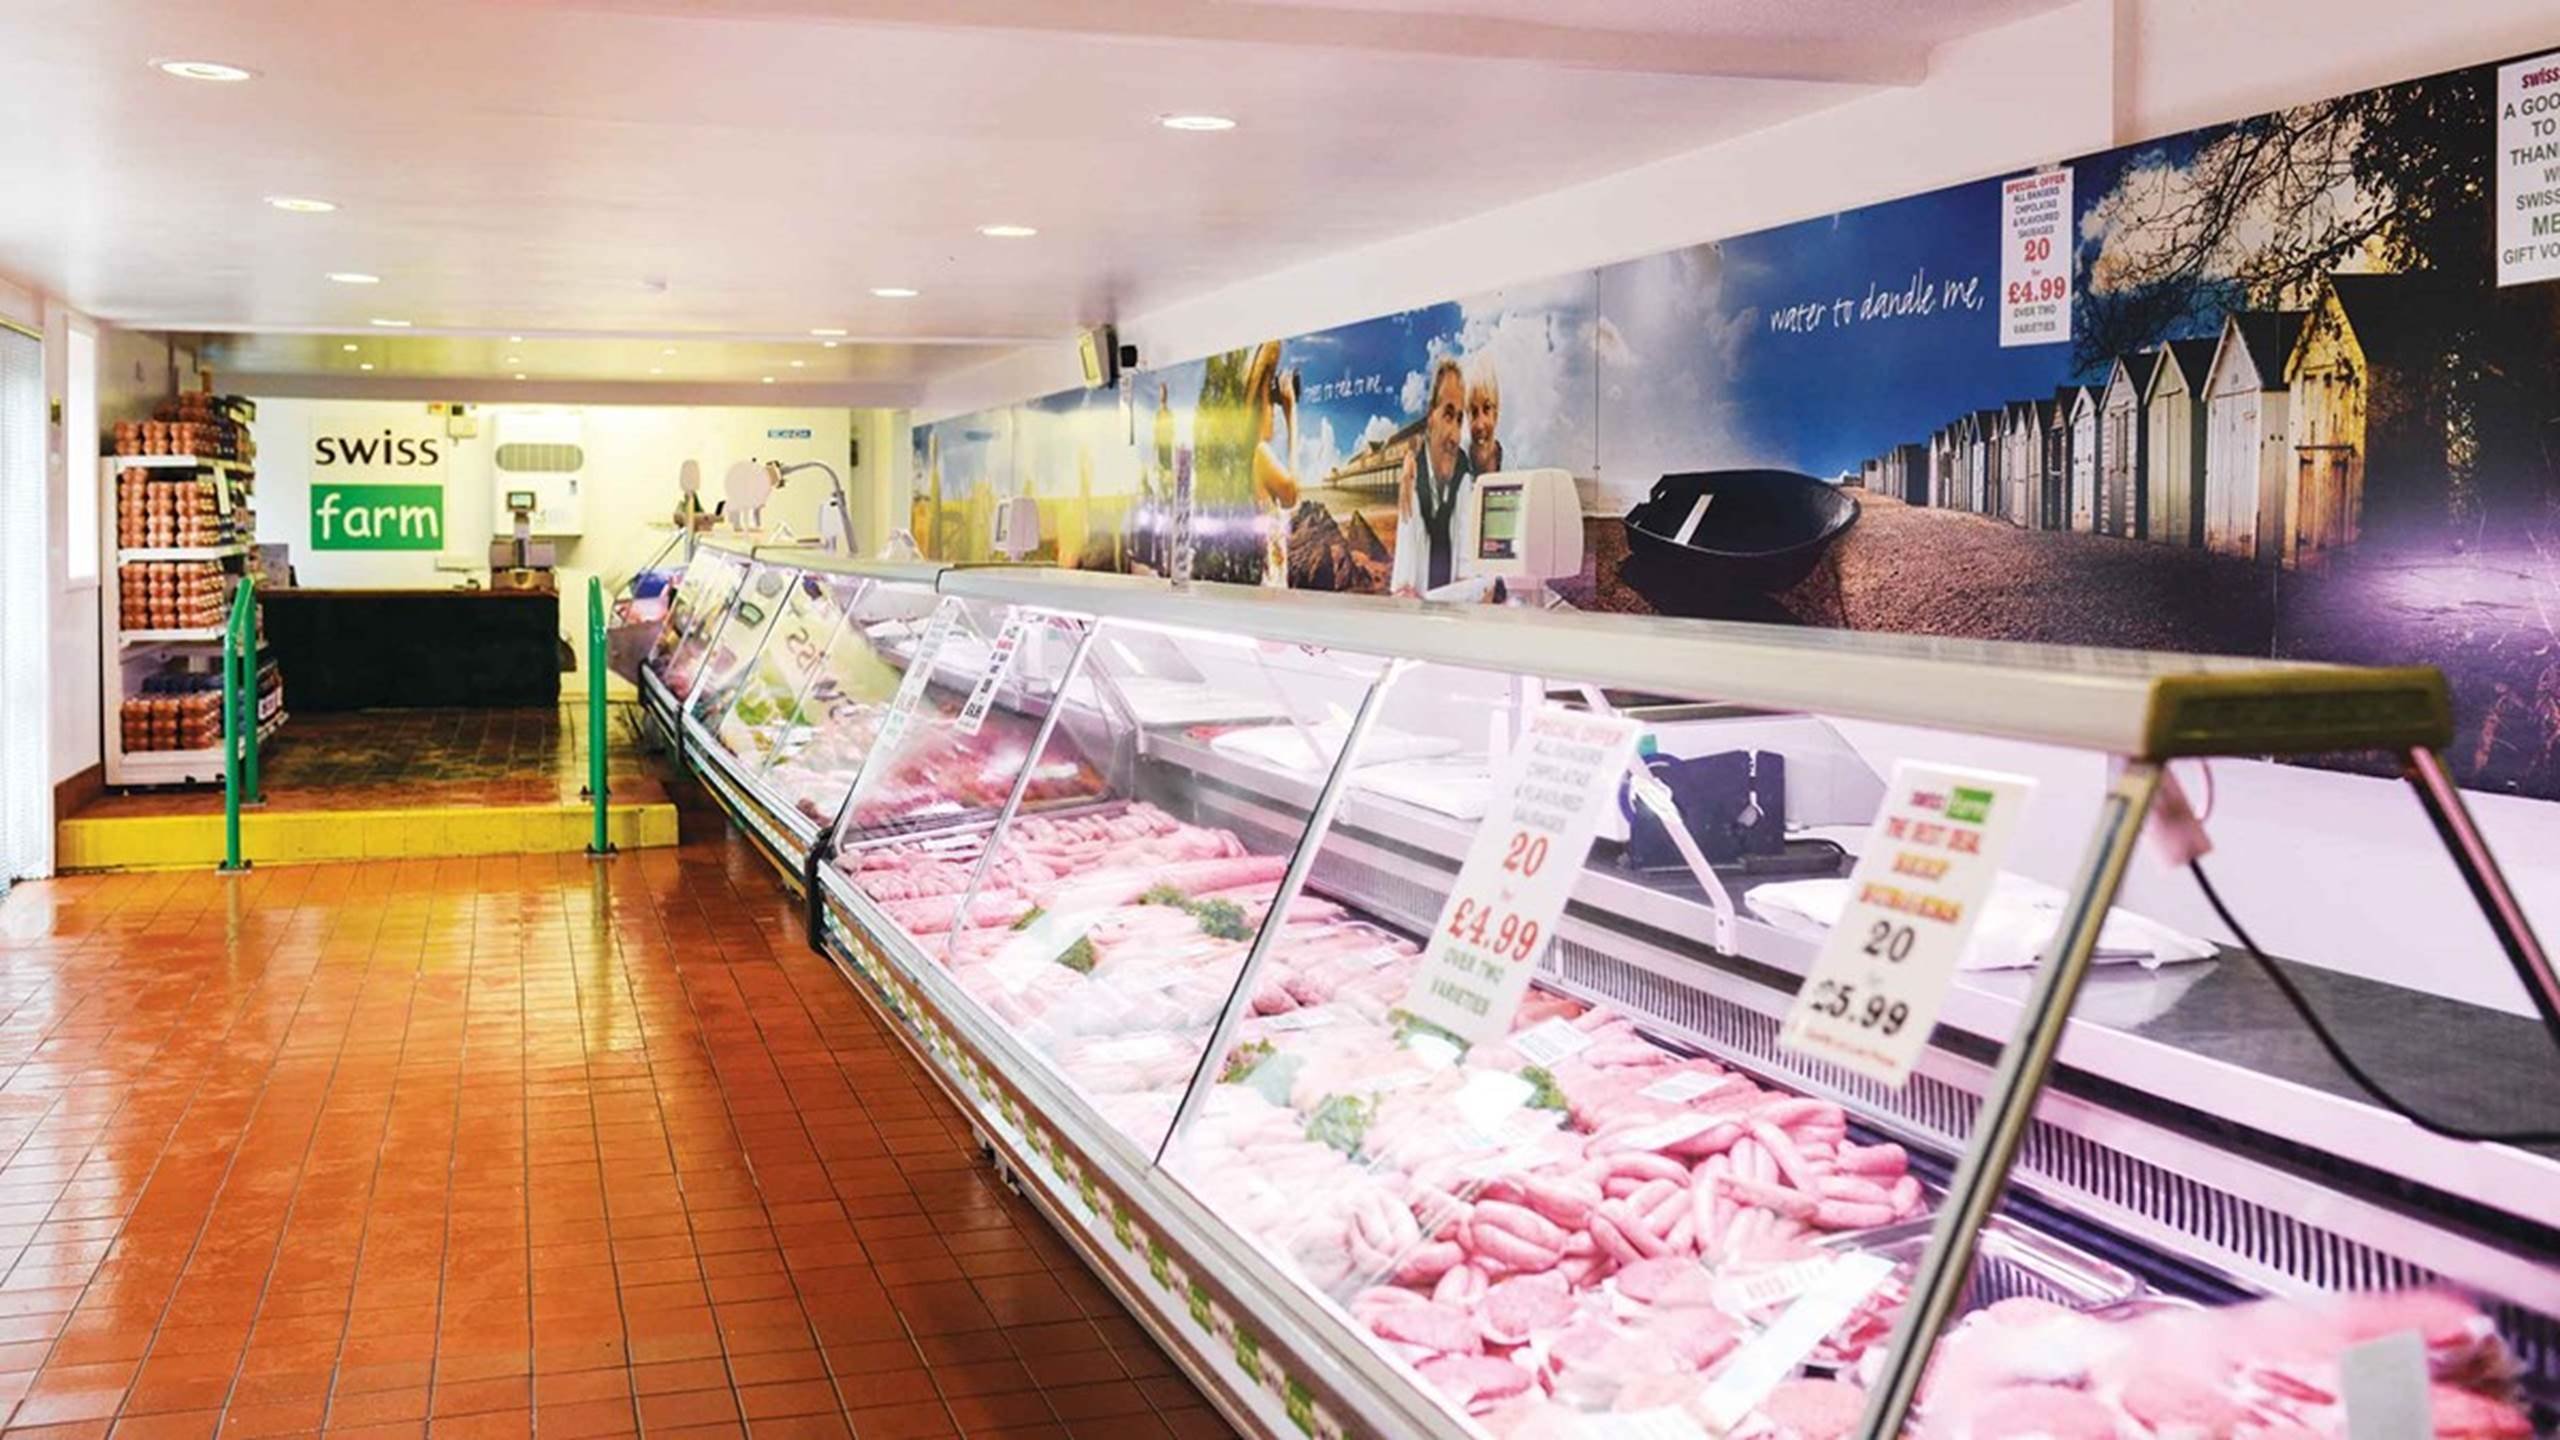 Swiss Farm Butchers Interior